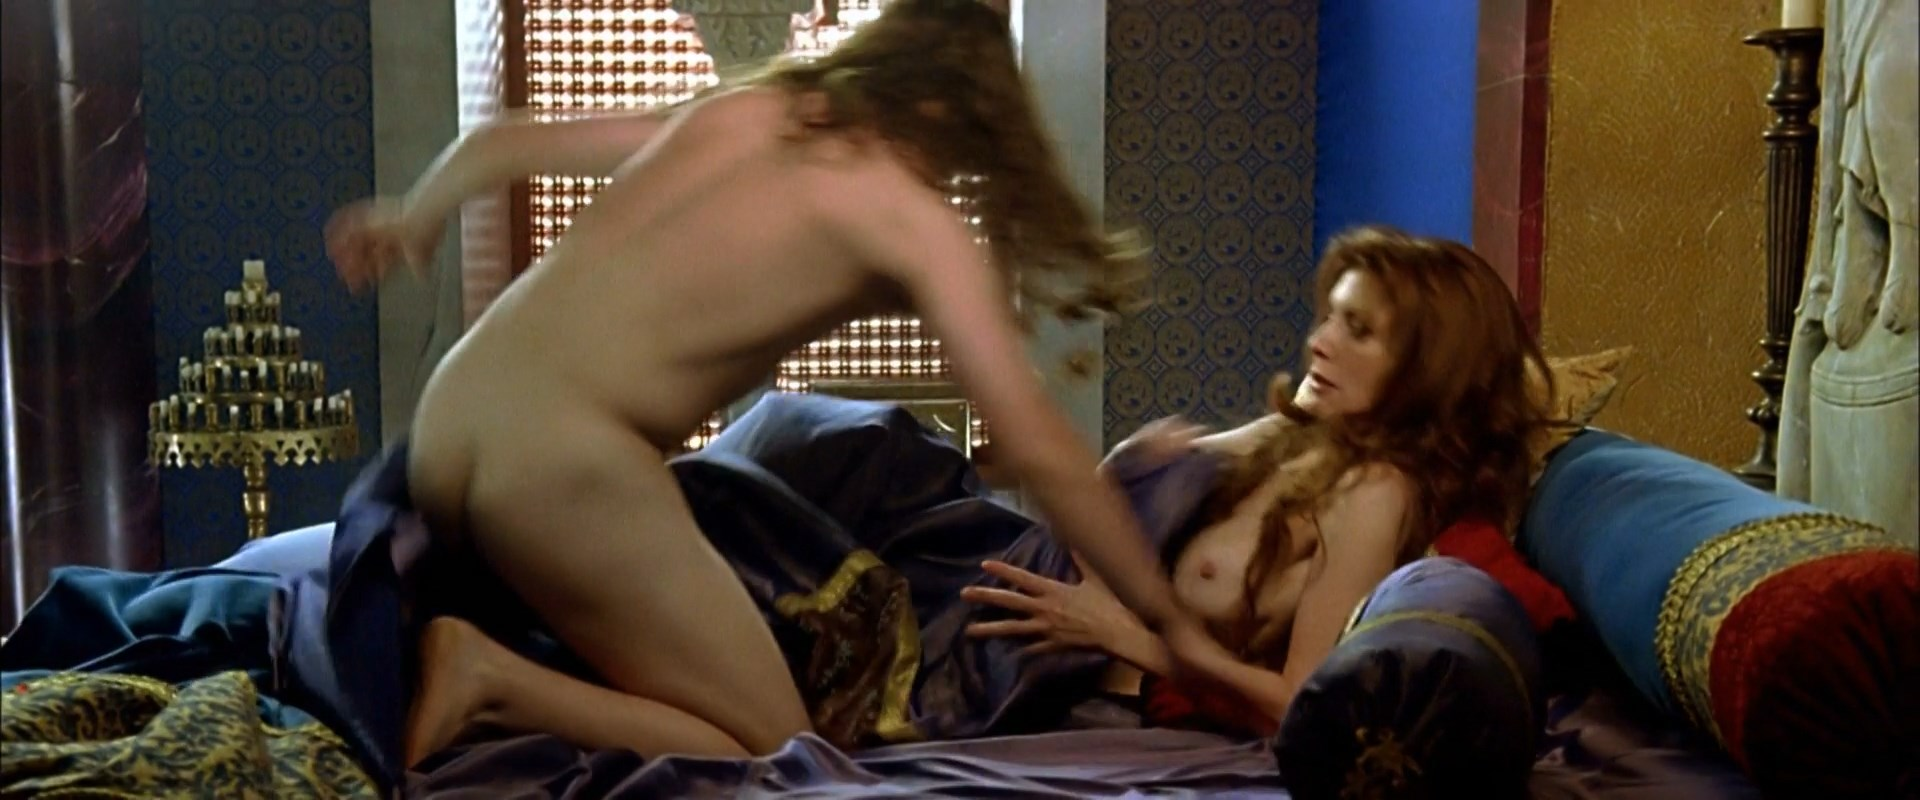 Jane asher nude naked sexy pics